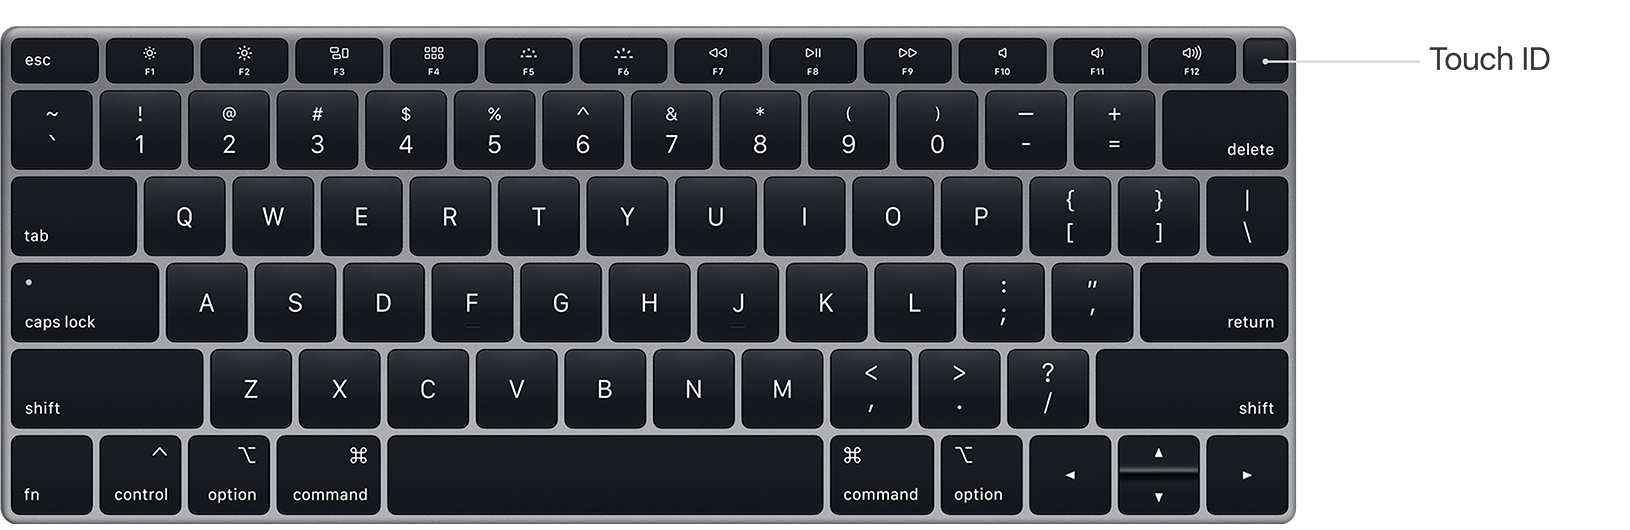 MacBook Air (Retina, 13-inch, 2018) keyboard with Touch ID button showing